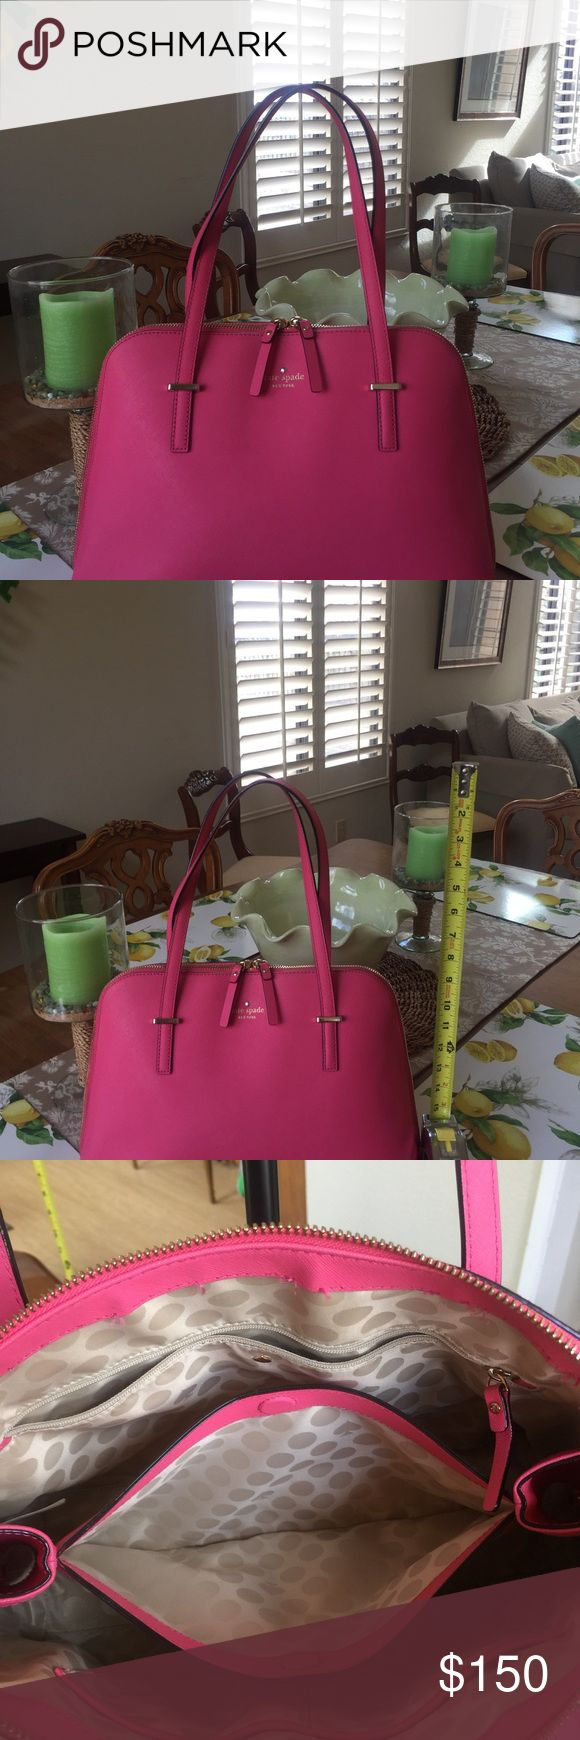 Kate Spade Medium Handbag This gorgeous hot pink bag holds your iPhone 7, MacBook, etc. The exterior is in great shape (minor mark as pictured) and the interior is nearly flawless! No marks. I included a picture of some loose stitching on the inside near the top zipper. This doesn't impact the great performance of this piece. This bag will get you noticed! Great for work, play, and shopping! kate spade Bags Shoulder Bags